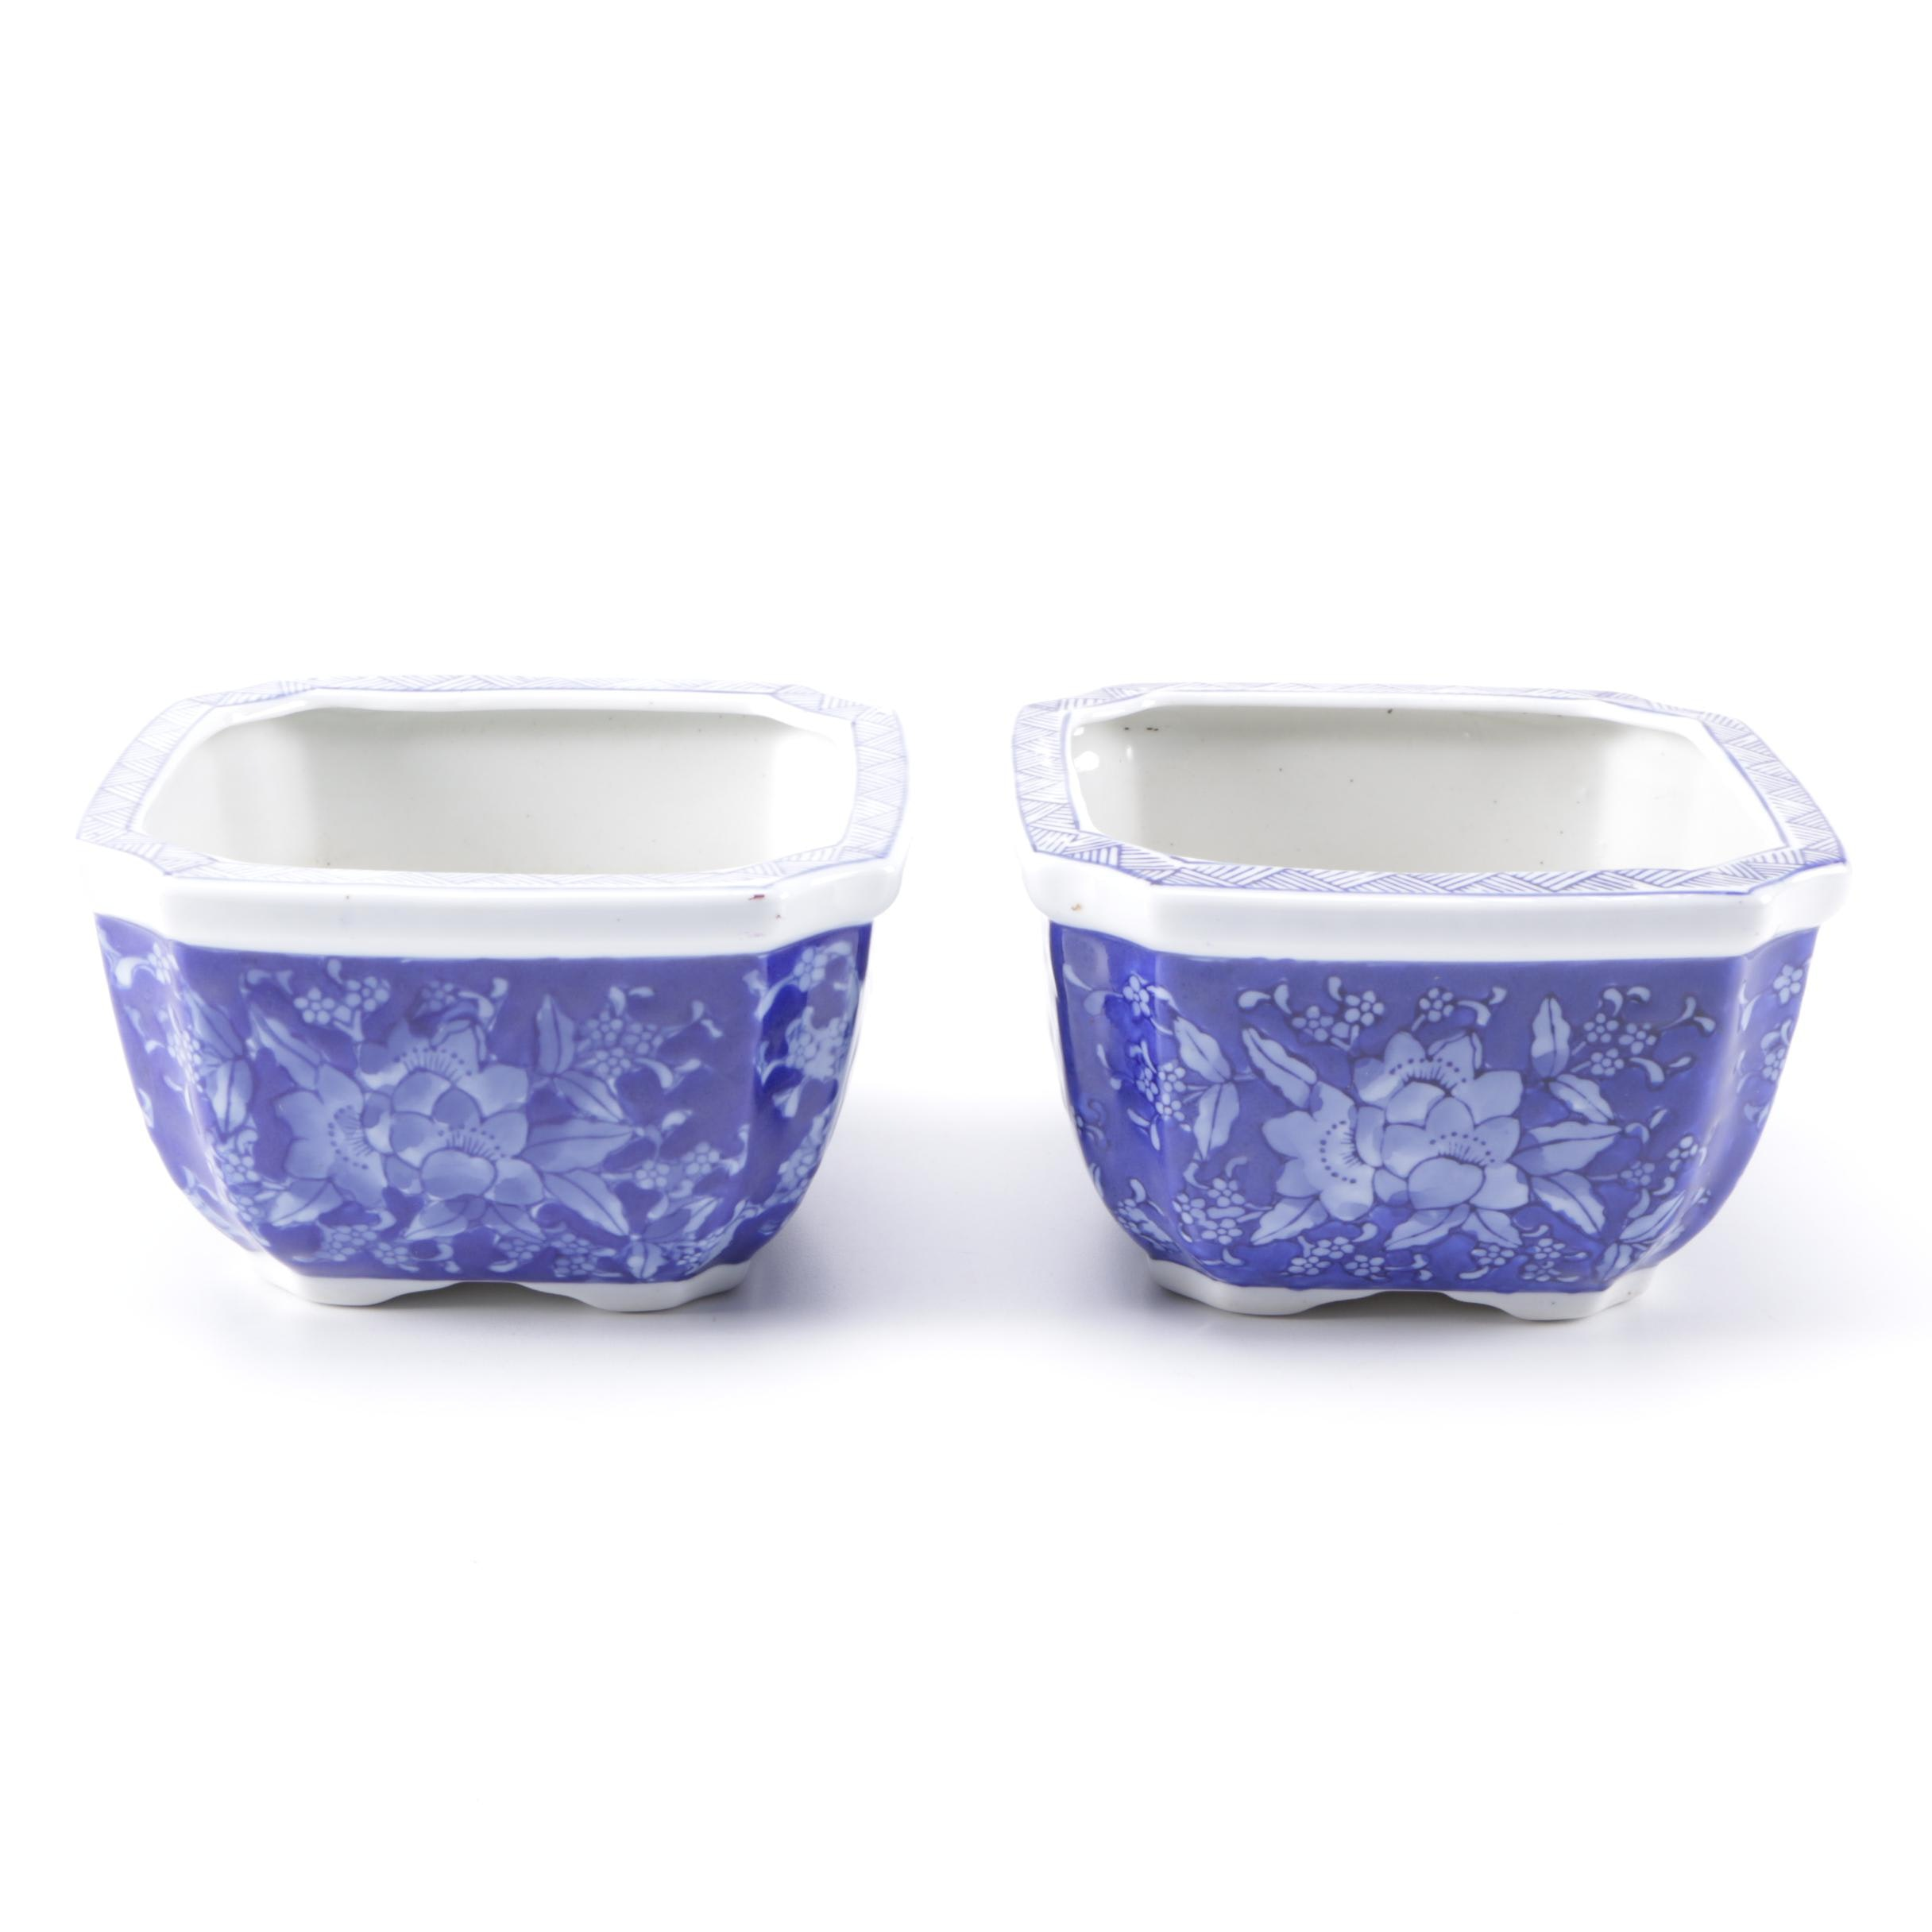 Pair of Blue and White Planters